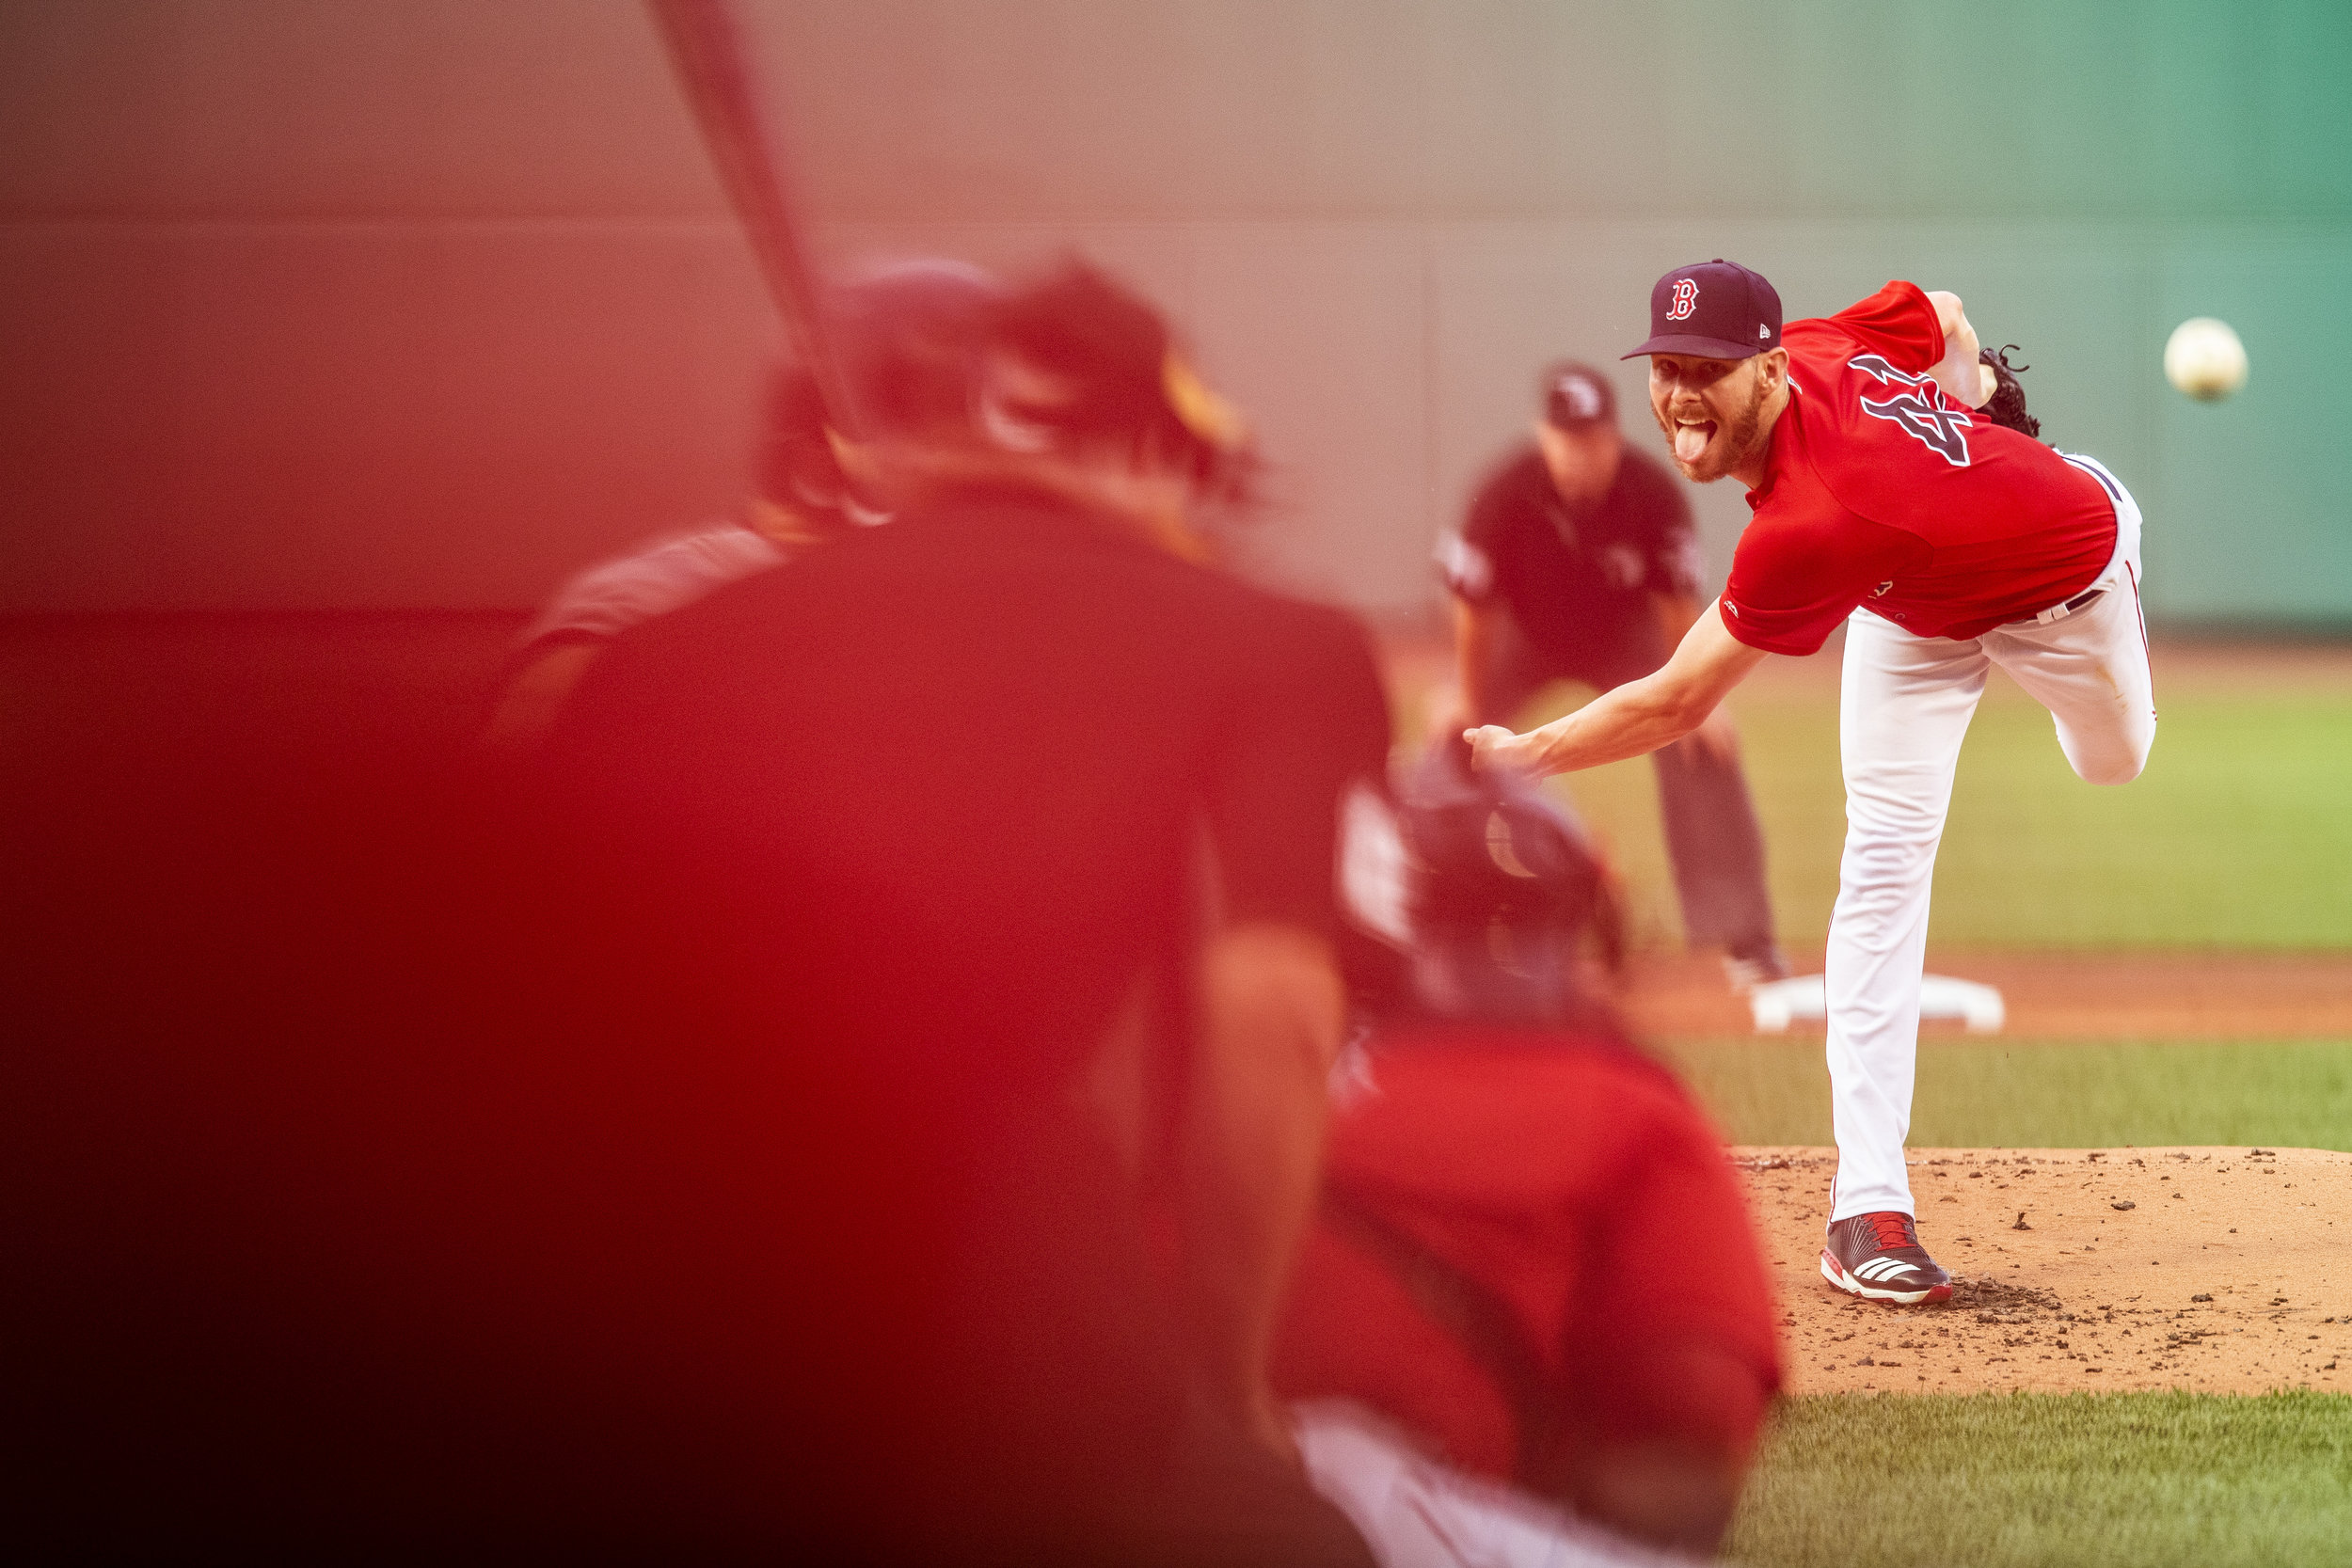 July 26, 2018, Boston, MA: Boston Red Sox pitcher Chris Sale delivers a pitch as the Boston Red Sox face the Minnesota Twins at Fenway Park in Boston, Massachusetts on Friday, July 27, 2018. (Photo by Matthew Thomas/Boston Red Sox)